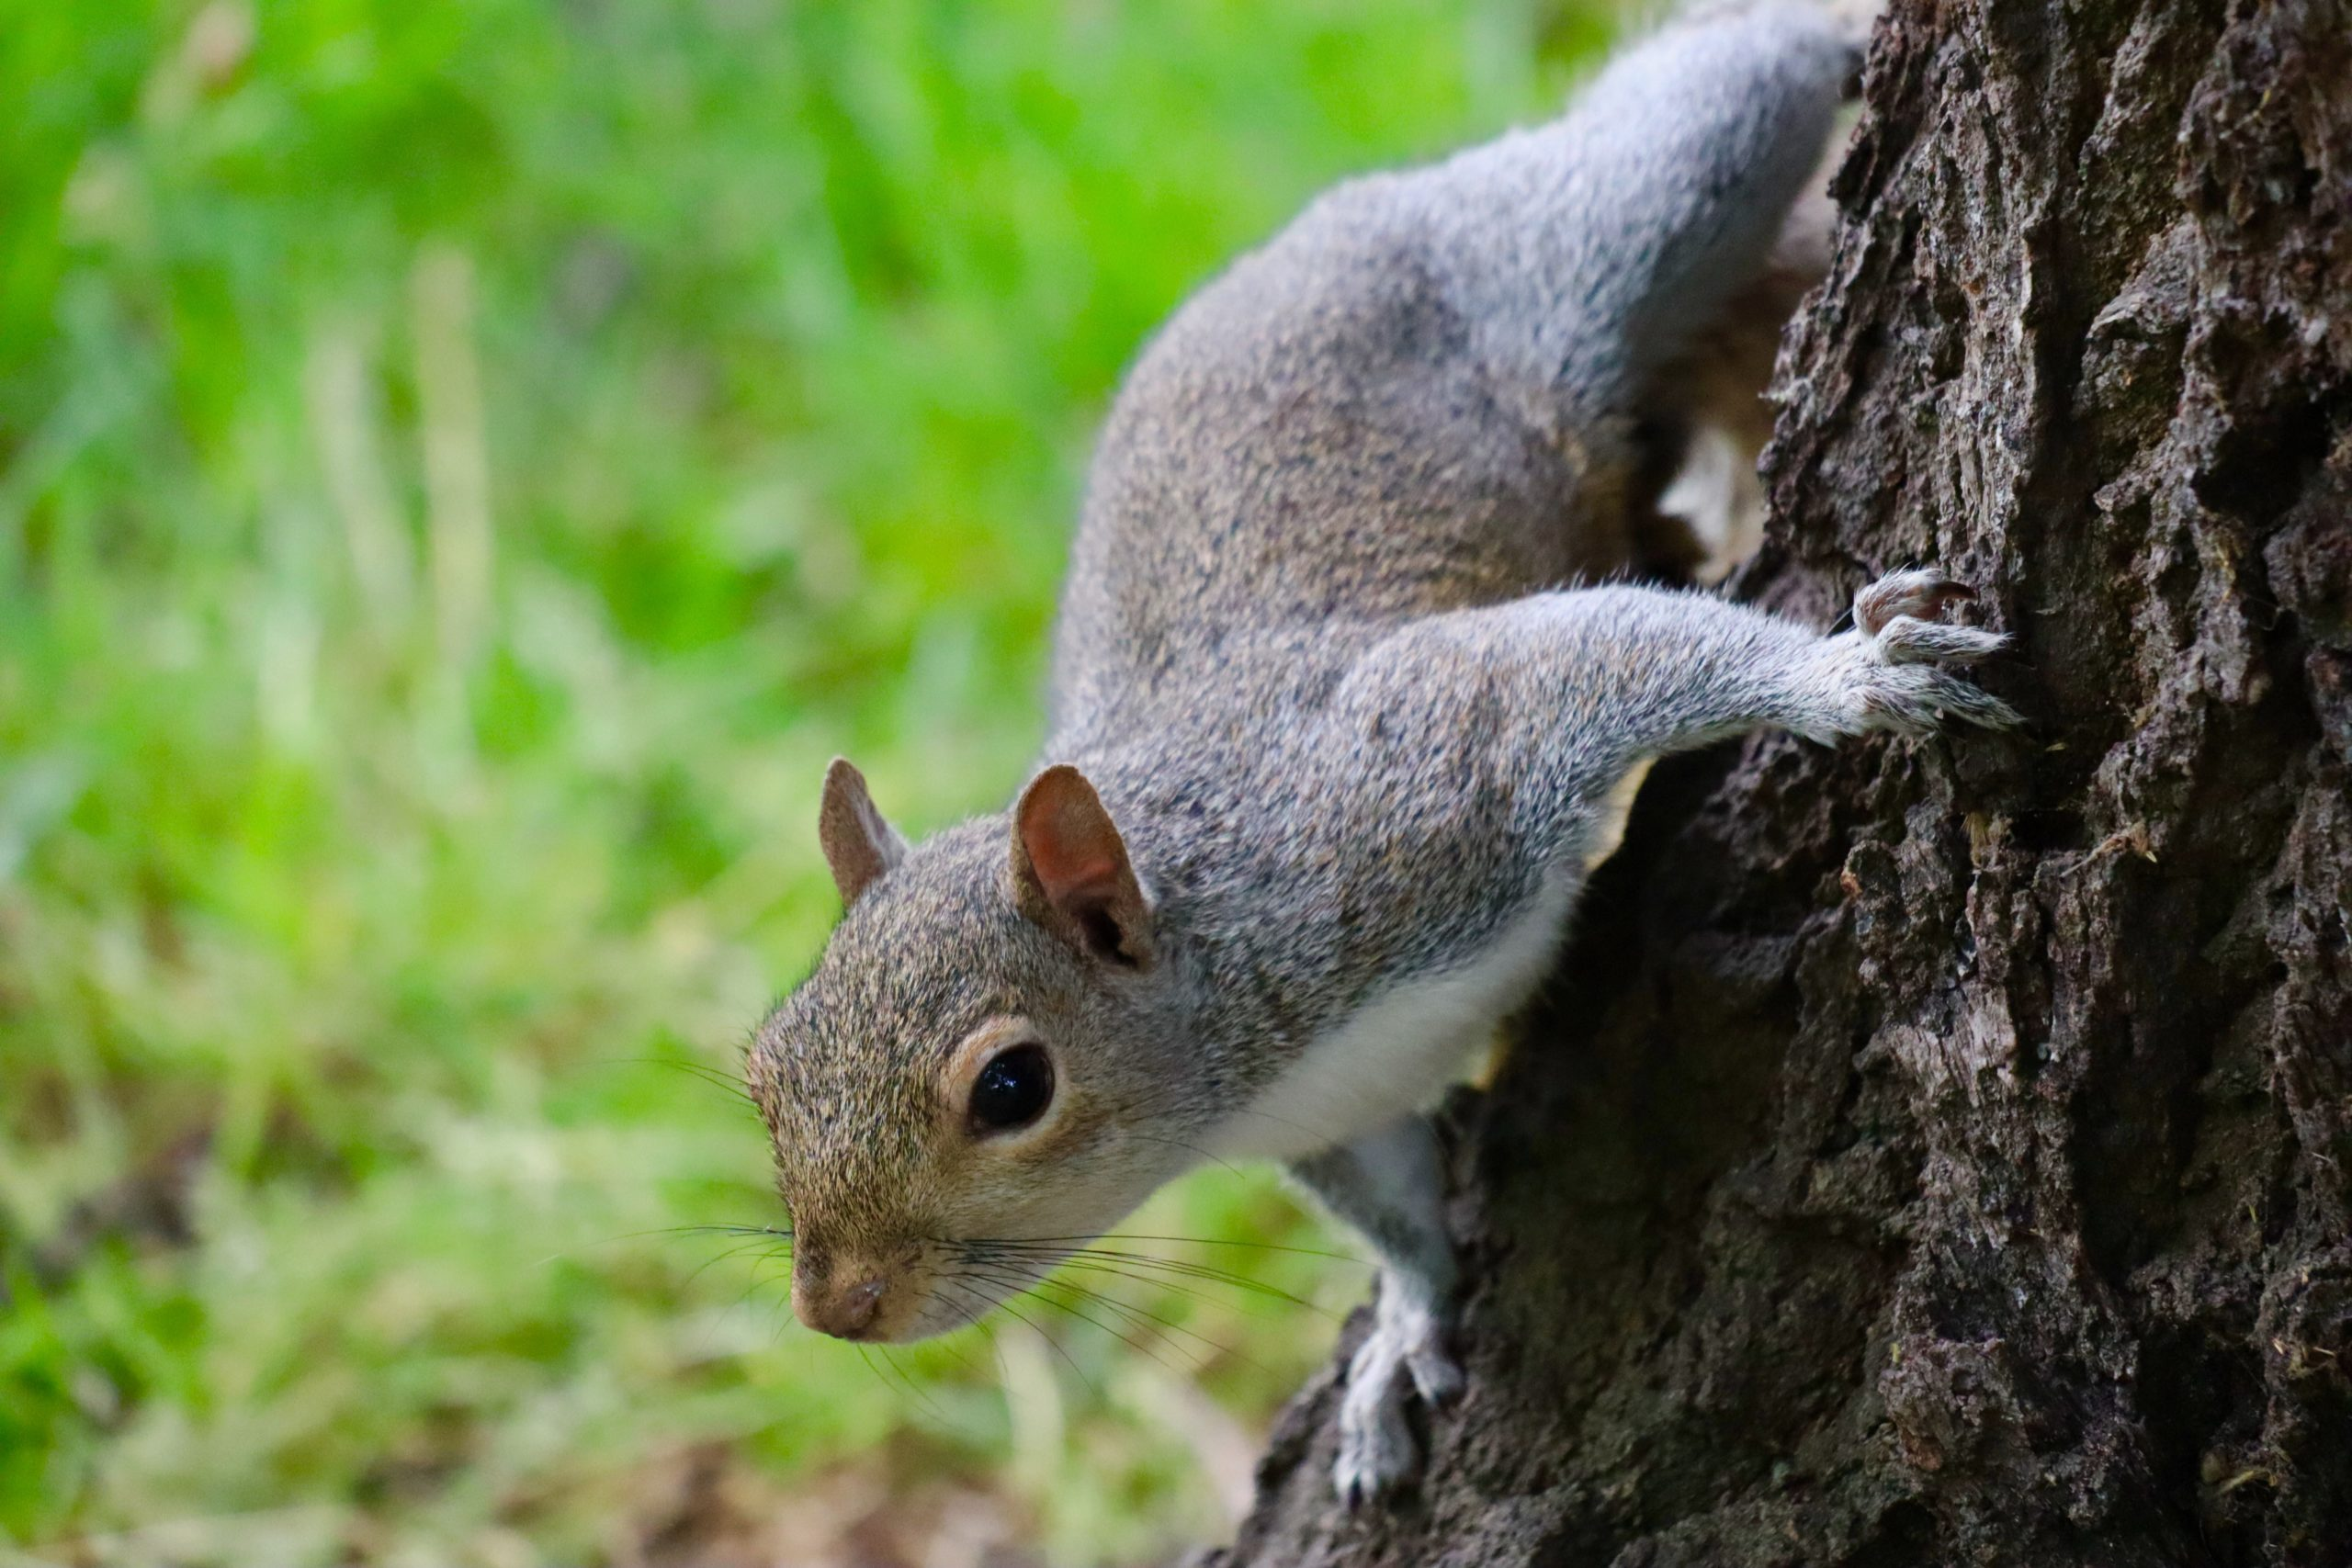 Image of eastern gray squirrel climbing tree